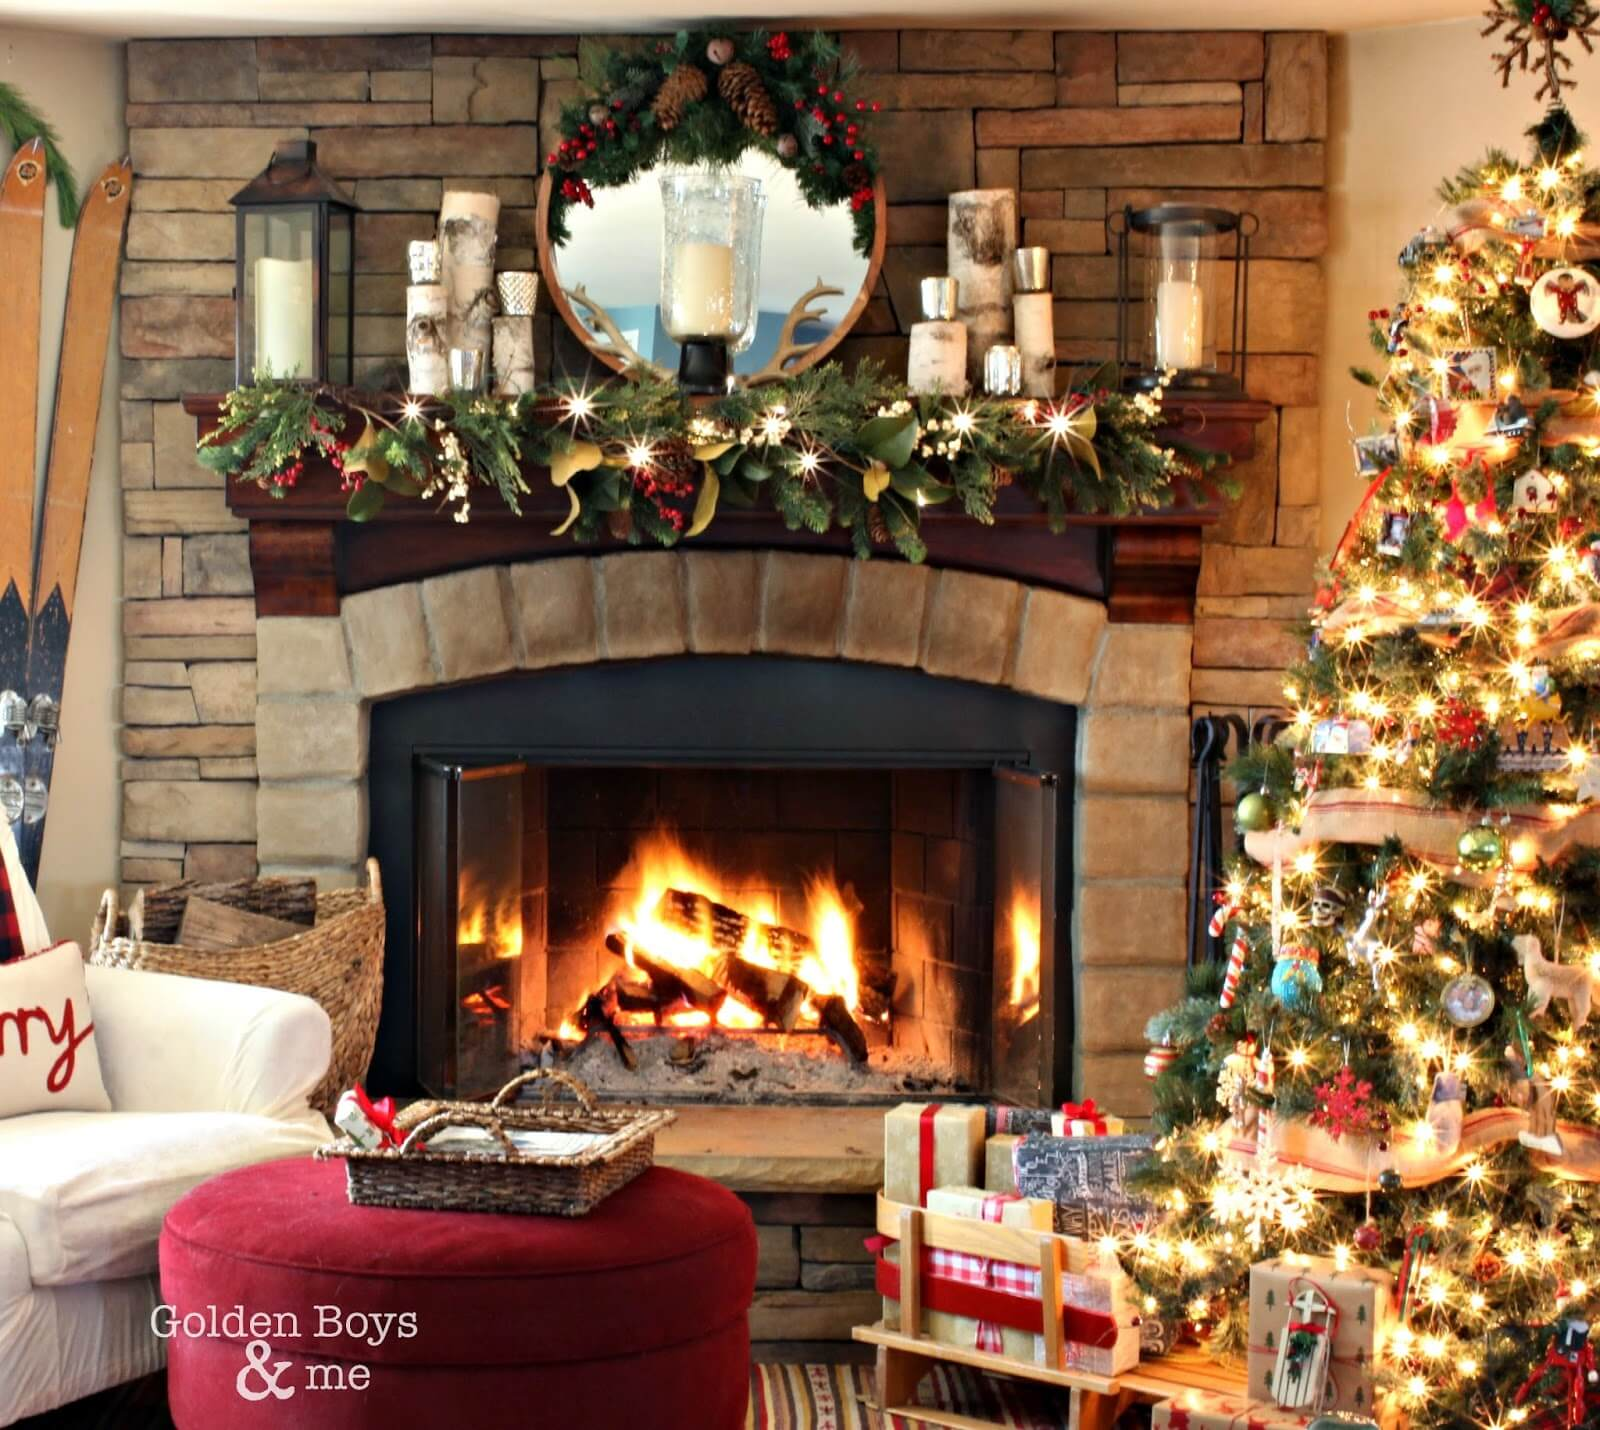 Decorating Your House For Christmas: 32 Best Christmas Mantel Decoration Ideas And Designs For 2019